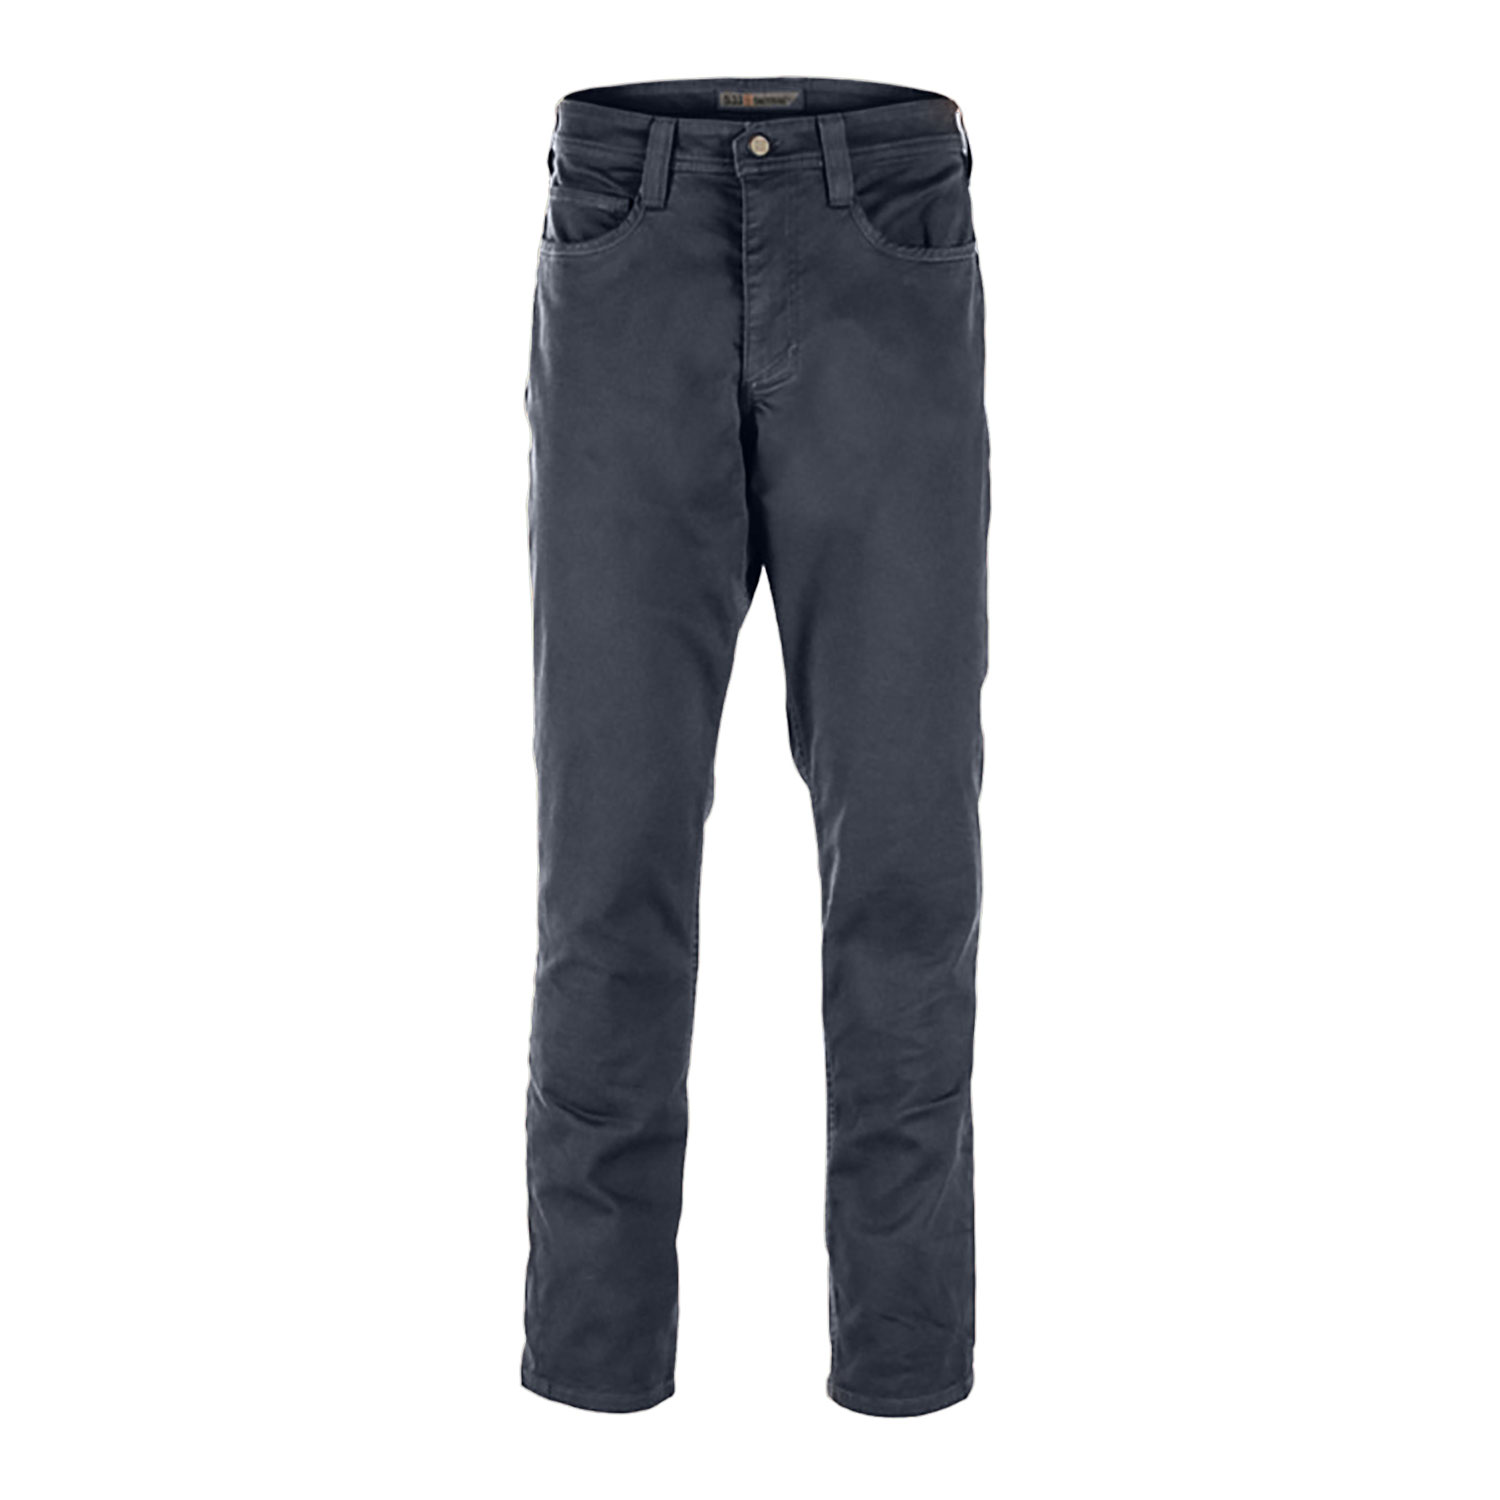 5.11 Tactical Defender Flex Straight Pants